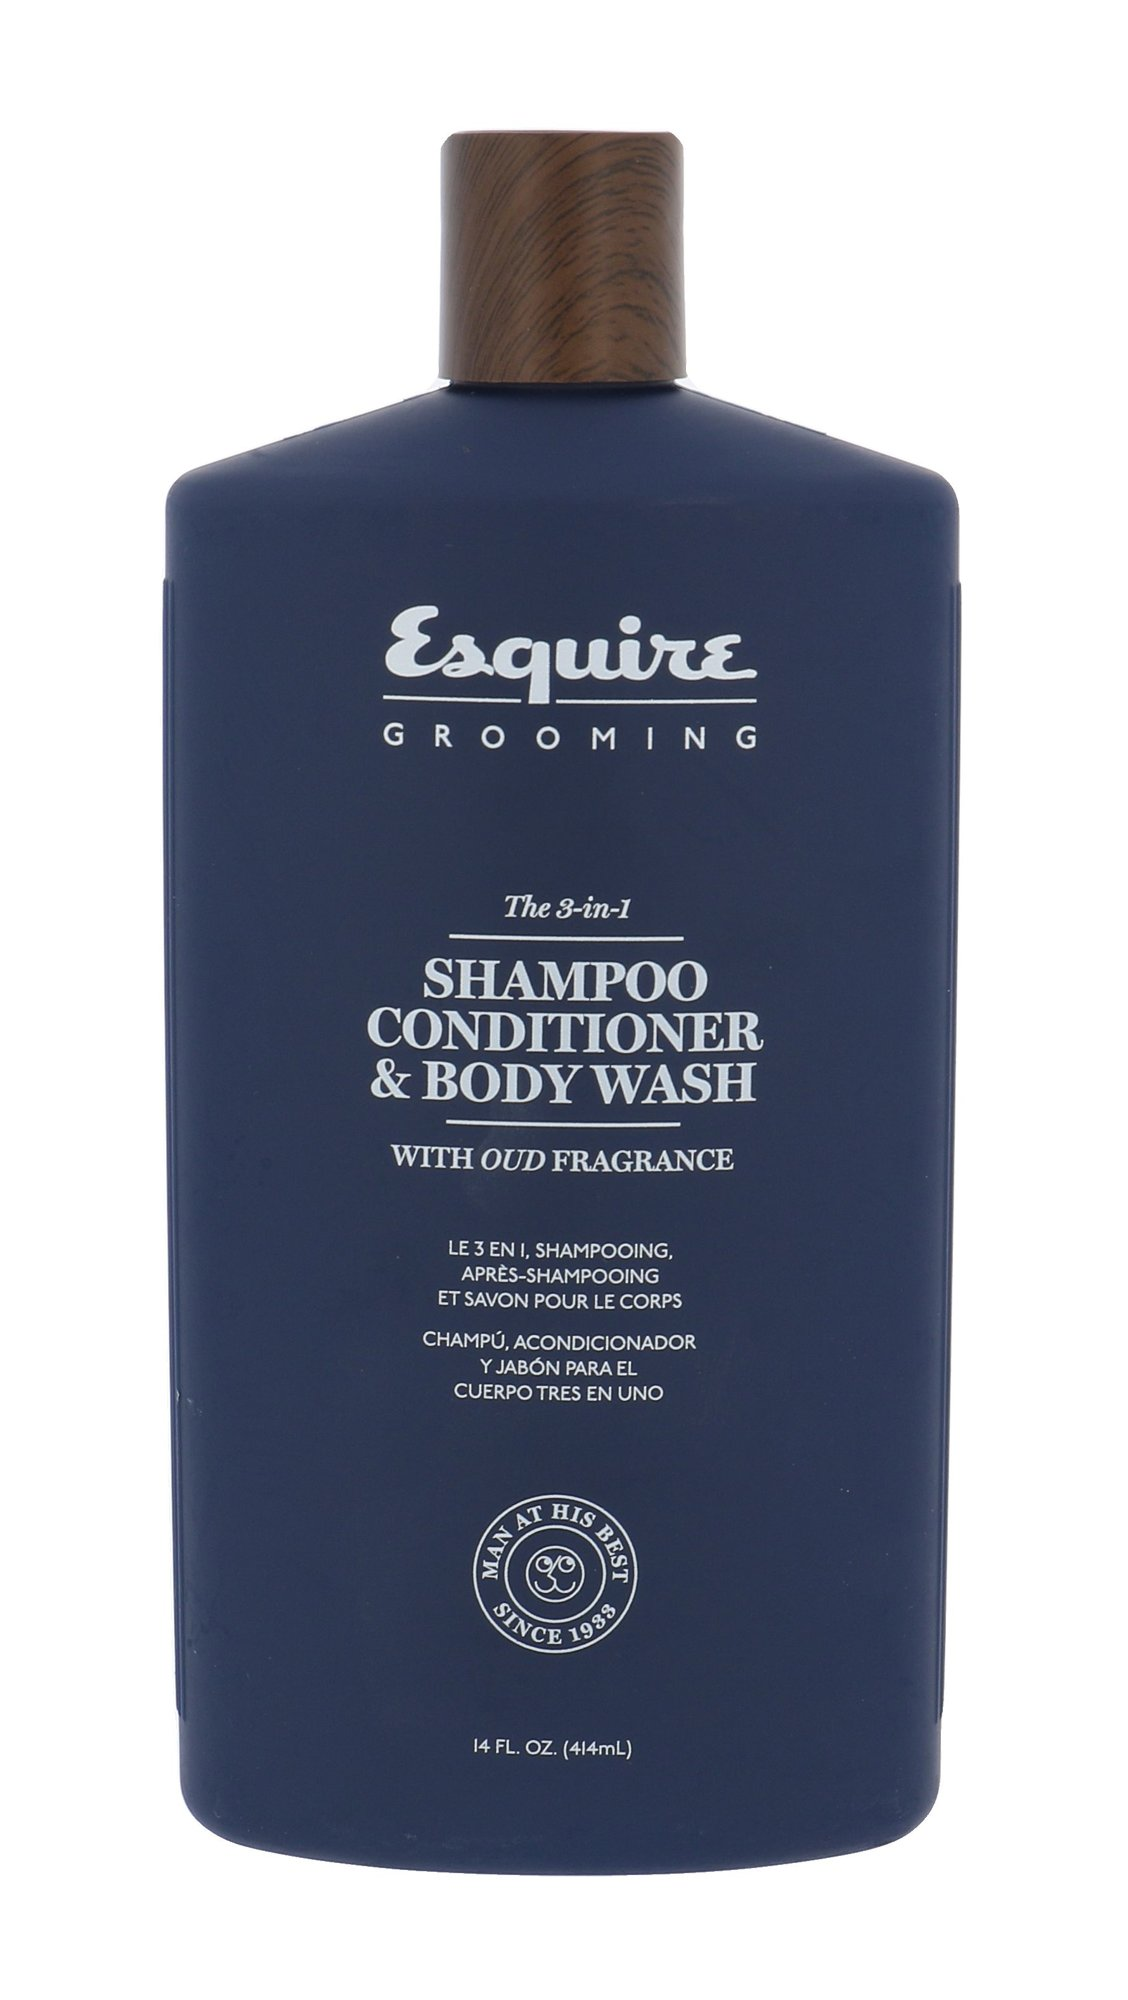 Farouk Systems Esquire Grooming The 3-In-1 Shampoo Cosmetic 414ml